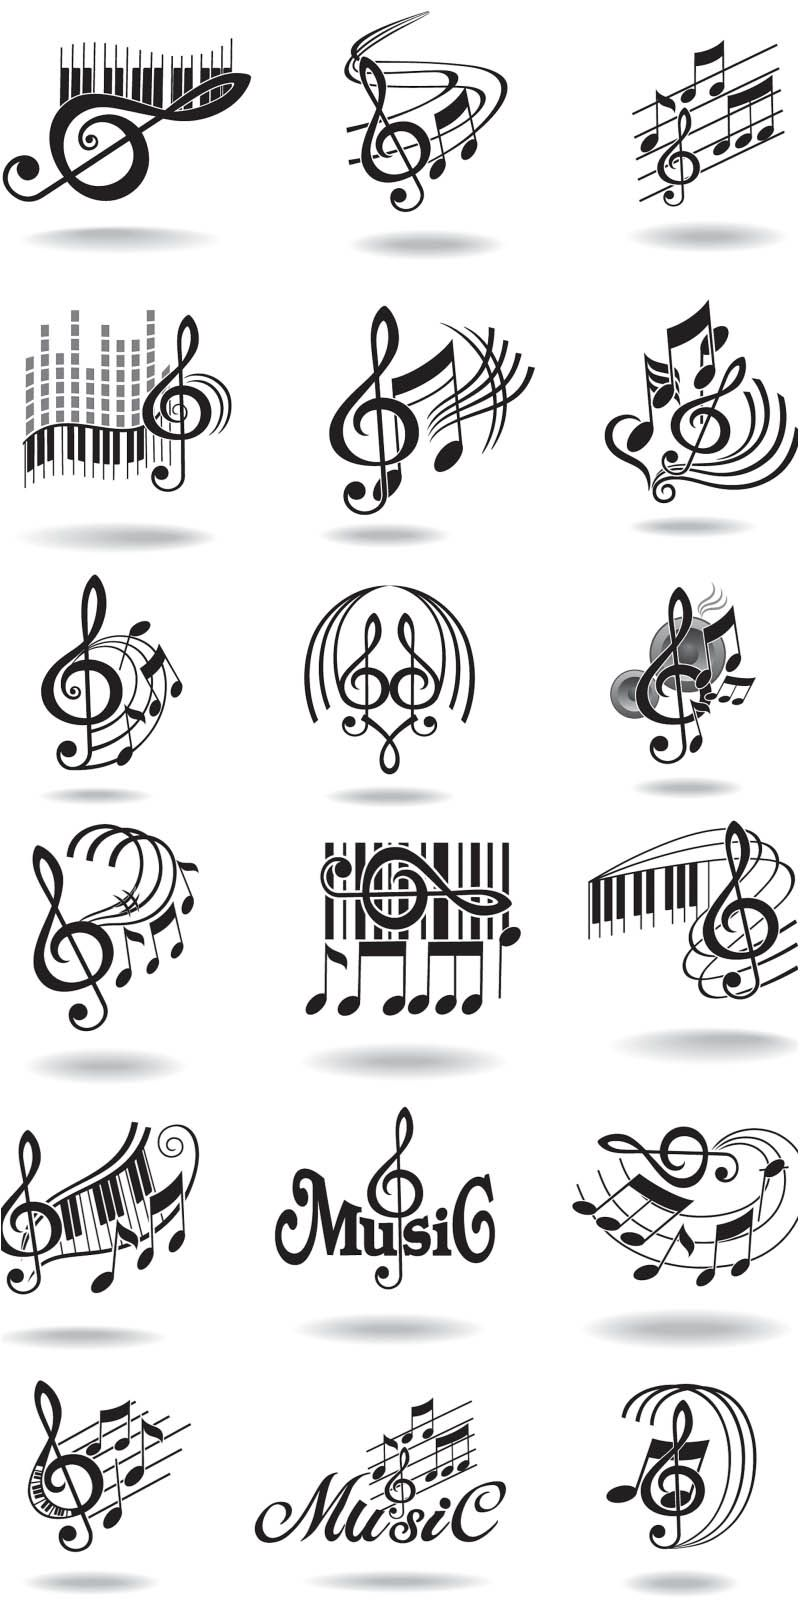 Collection of musical images which illustrate a treble clef